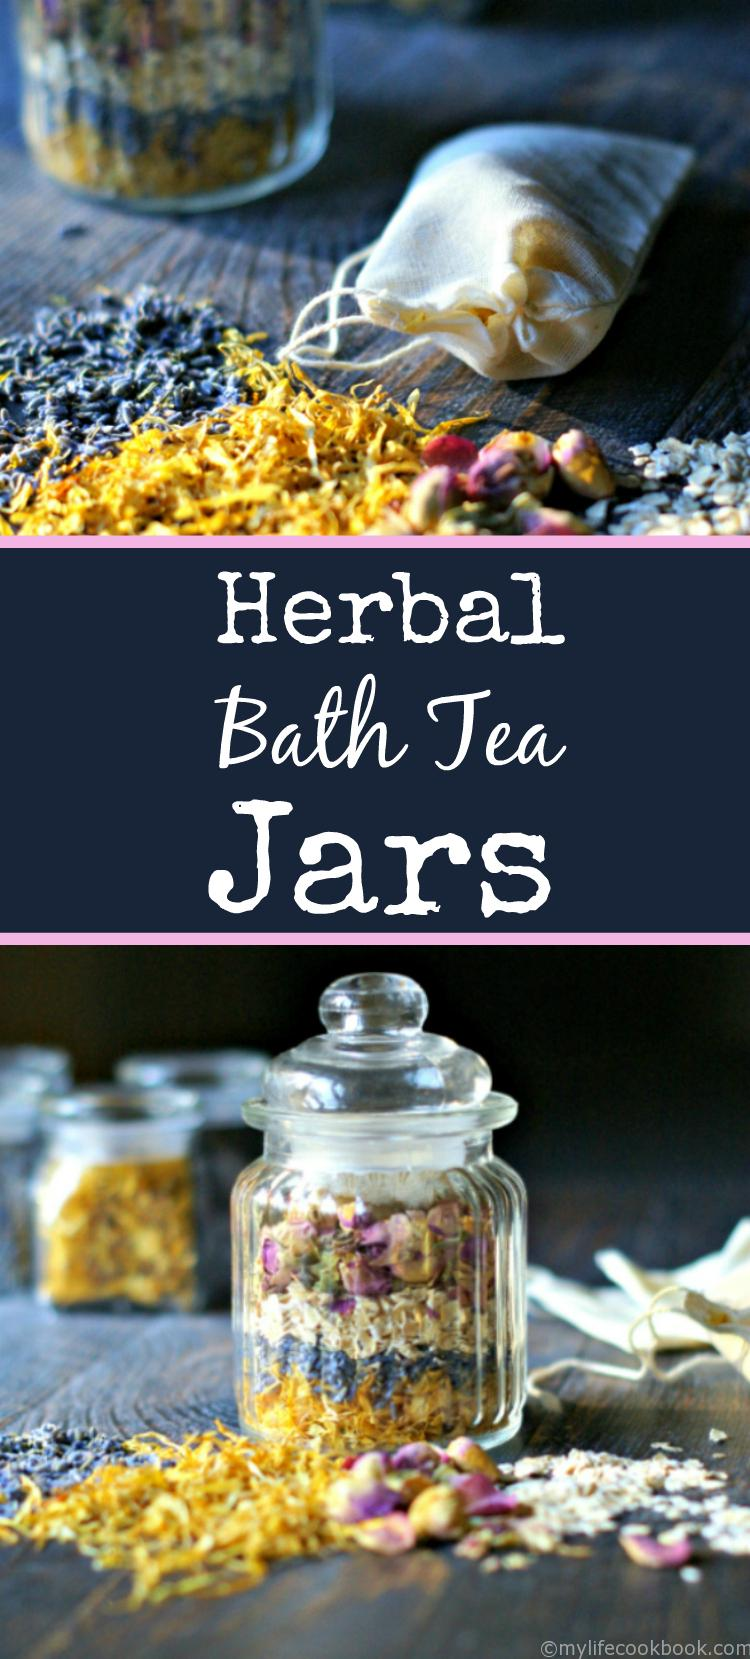 Herbal bath tea jars are both beautiful and useful. Give as a gift or use for yourself as you take a relaxing bath.